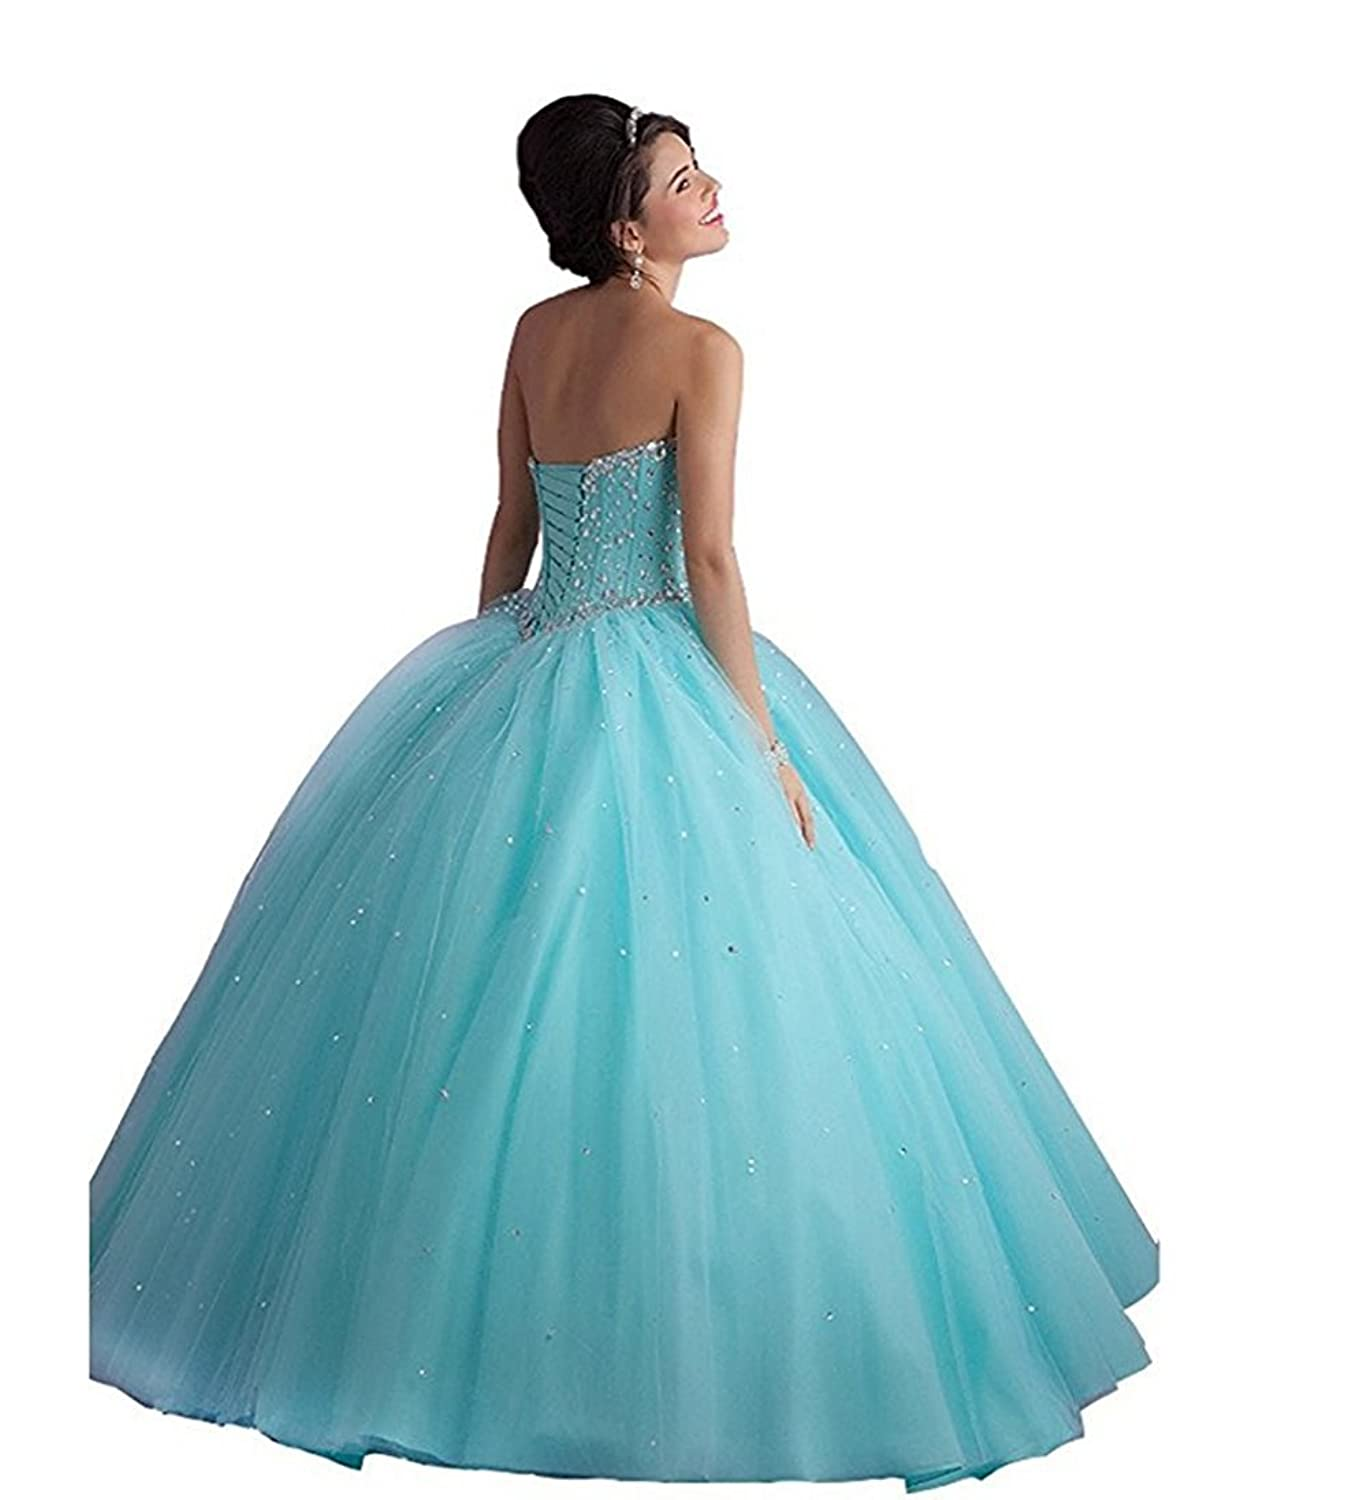 Magnificent Fire And Ice Prom Dresses Component - Wedding Dresses ...